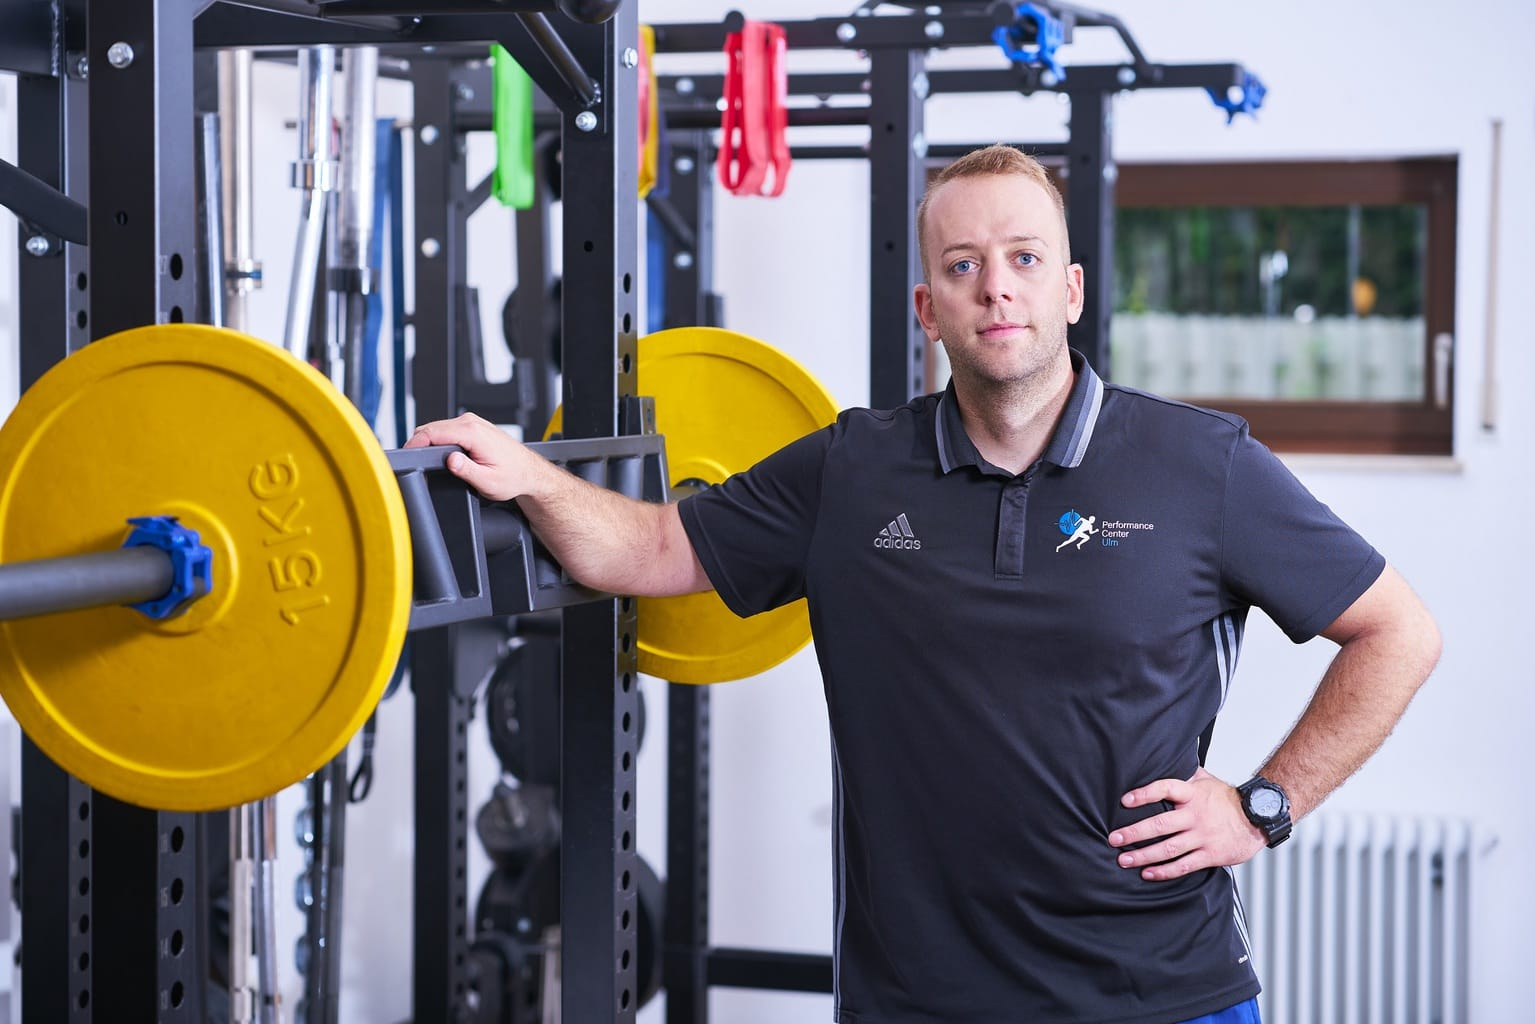 Personal Fitness Trainer Ulm